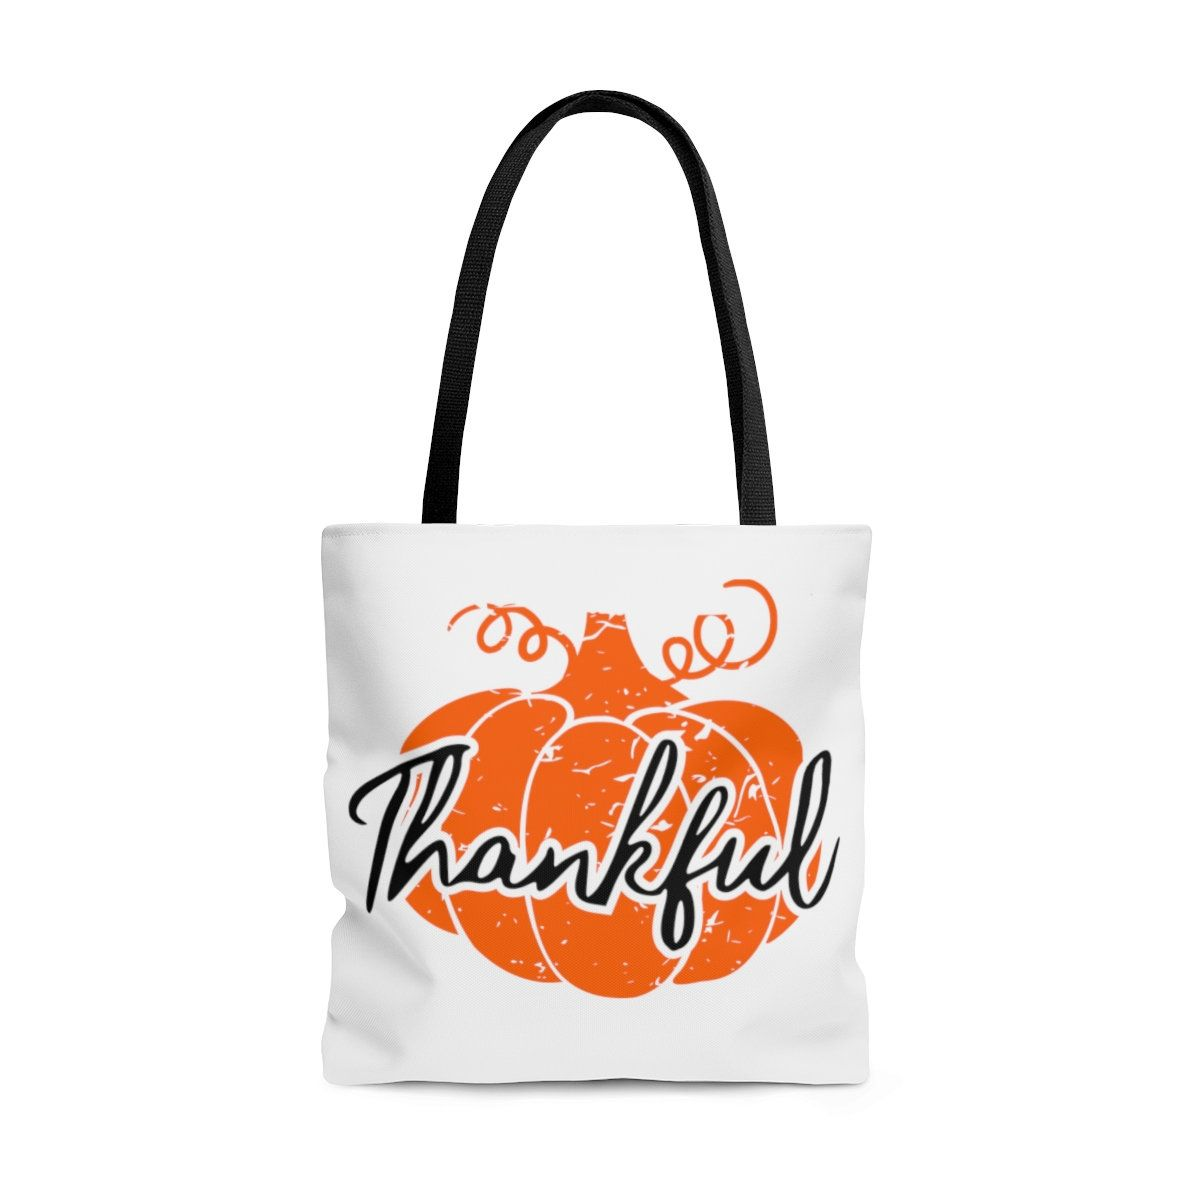 Thanksgiving tote, AOP Tote Bag, Thankful tote, Hand drawn Distressed Pumpkin, Thanksgiving Bags, thanksgiving gift for Teacher